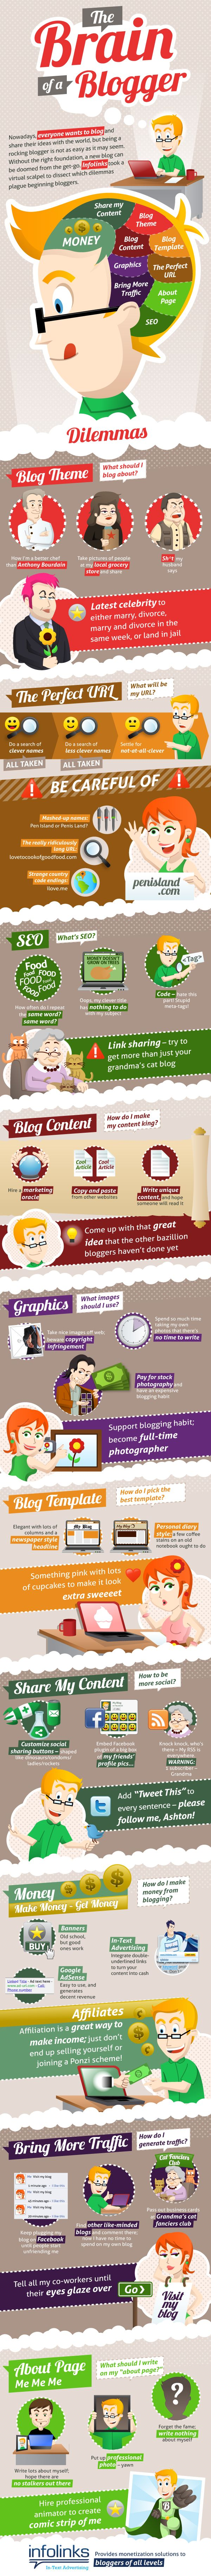 Nowadays, everyone wants to blog and share their ideads with the world, but being a rocking blogger is not as easy as it may seem. Without the right foundation, a new blog can be doomed from the get-go. Infolinks took a virtual scalpel to dissect which dilemass plague beginning bloggers.